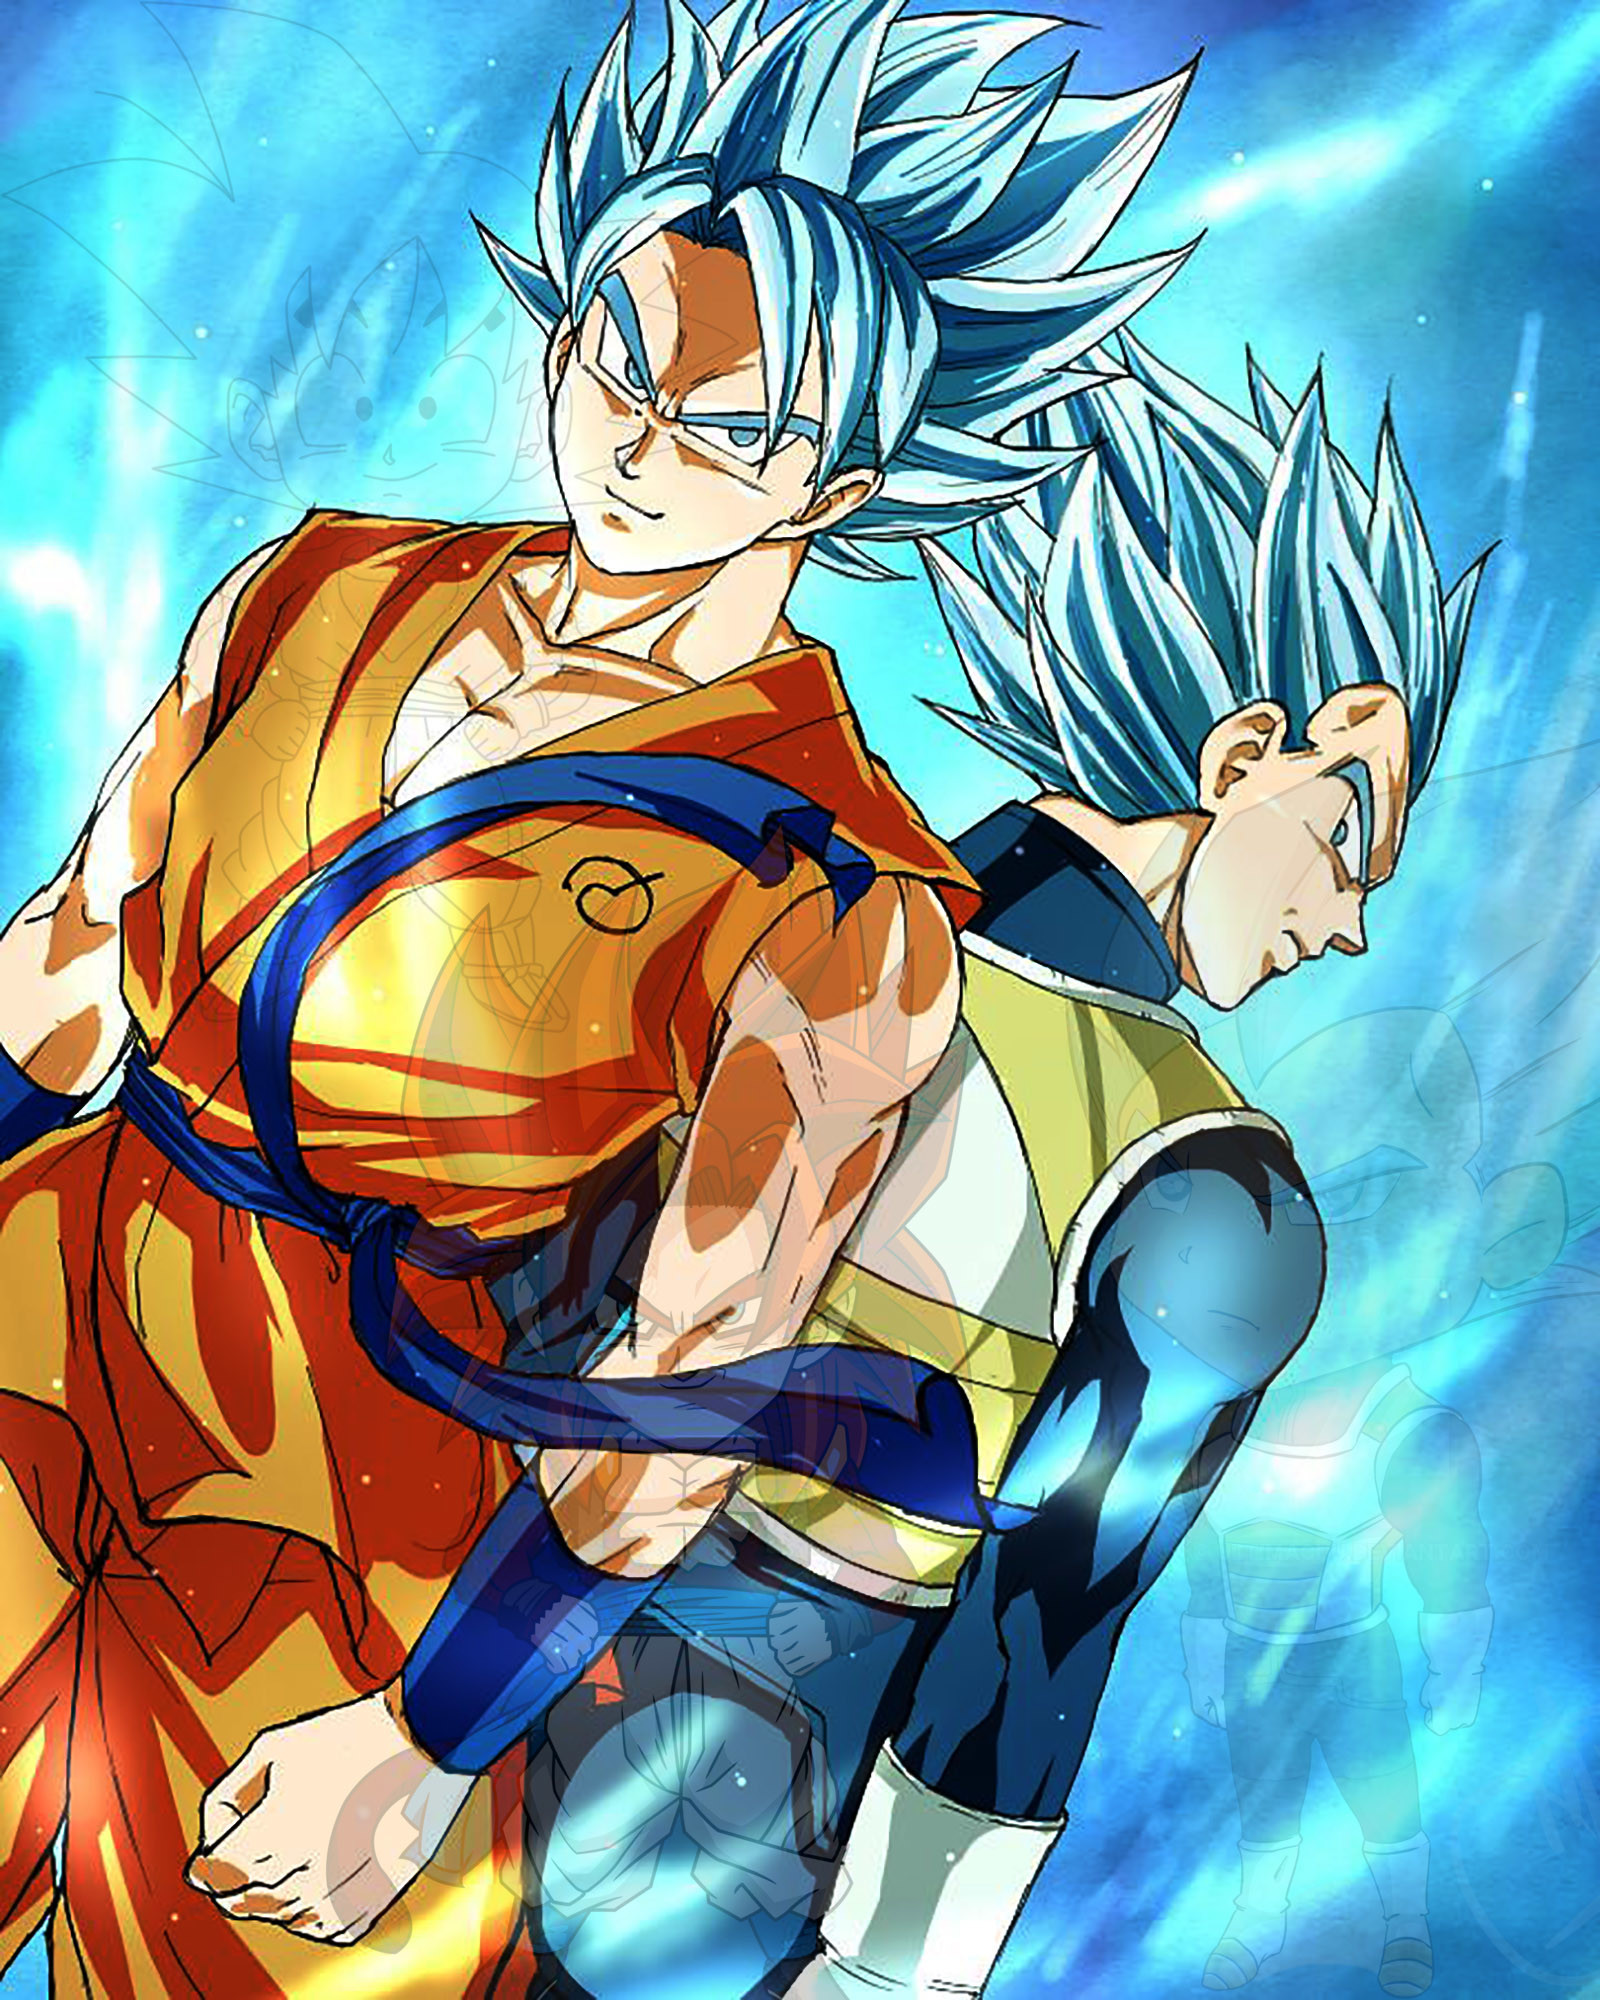 53 Trunks (Dragon Ball) HD Wallpapers   Backgrounds – Wallpaper Abyss